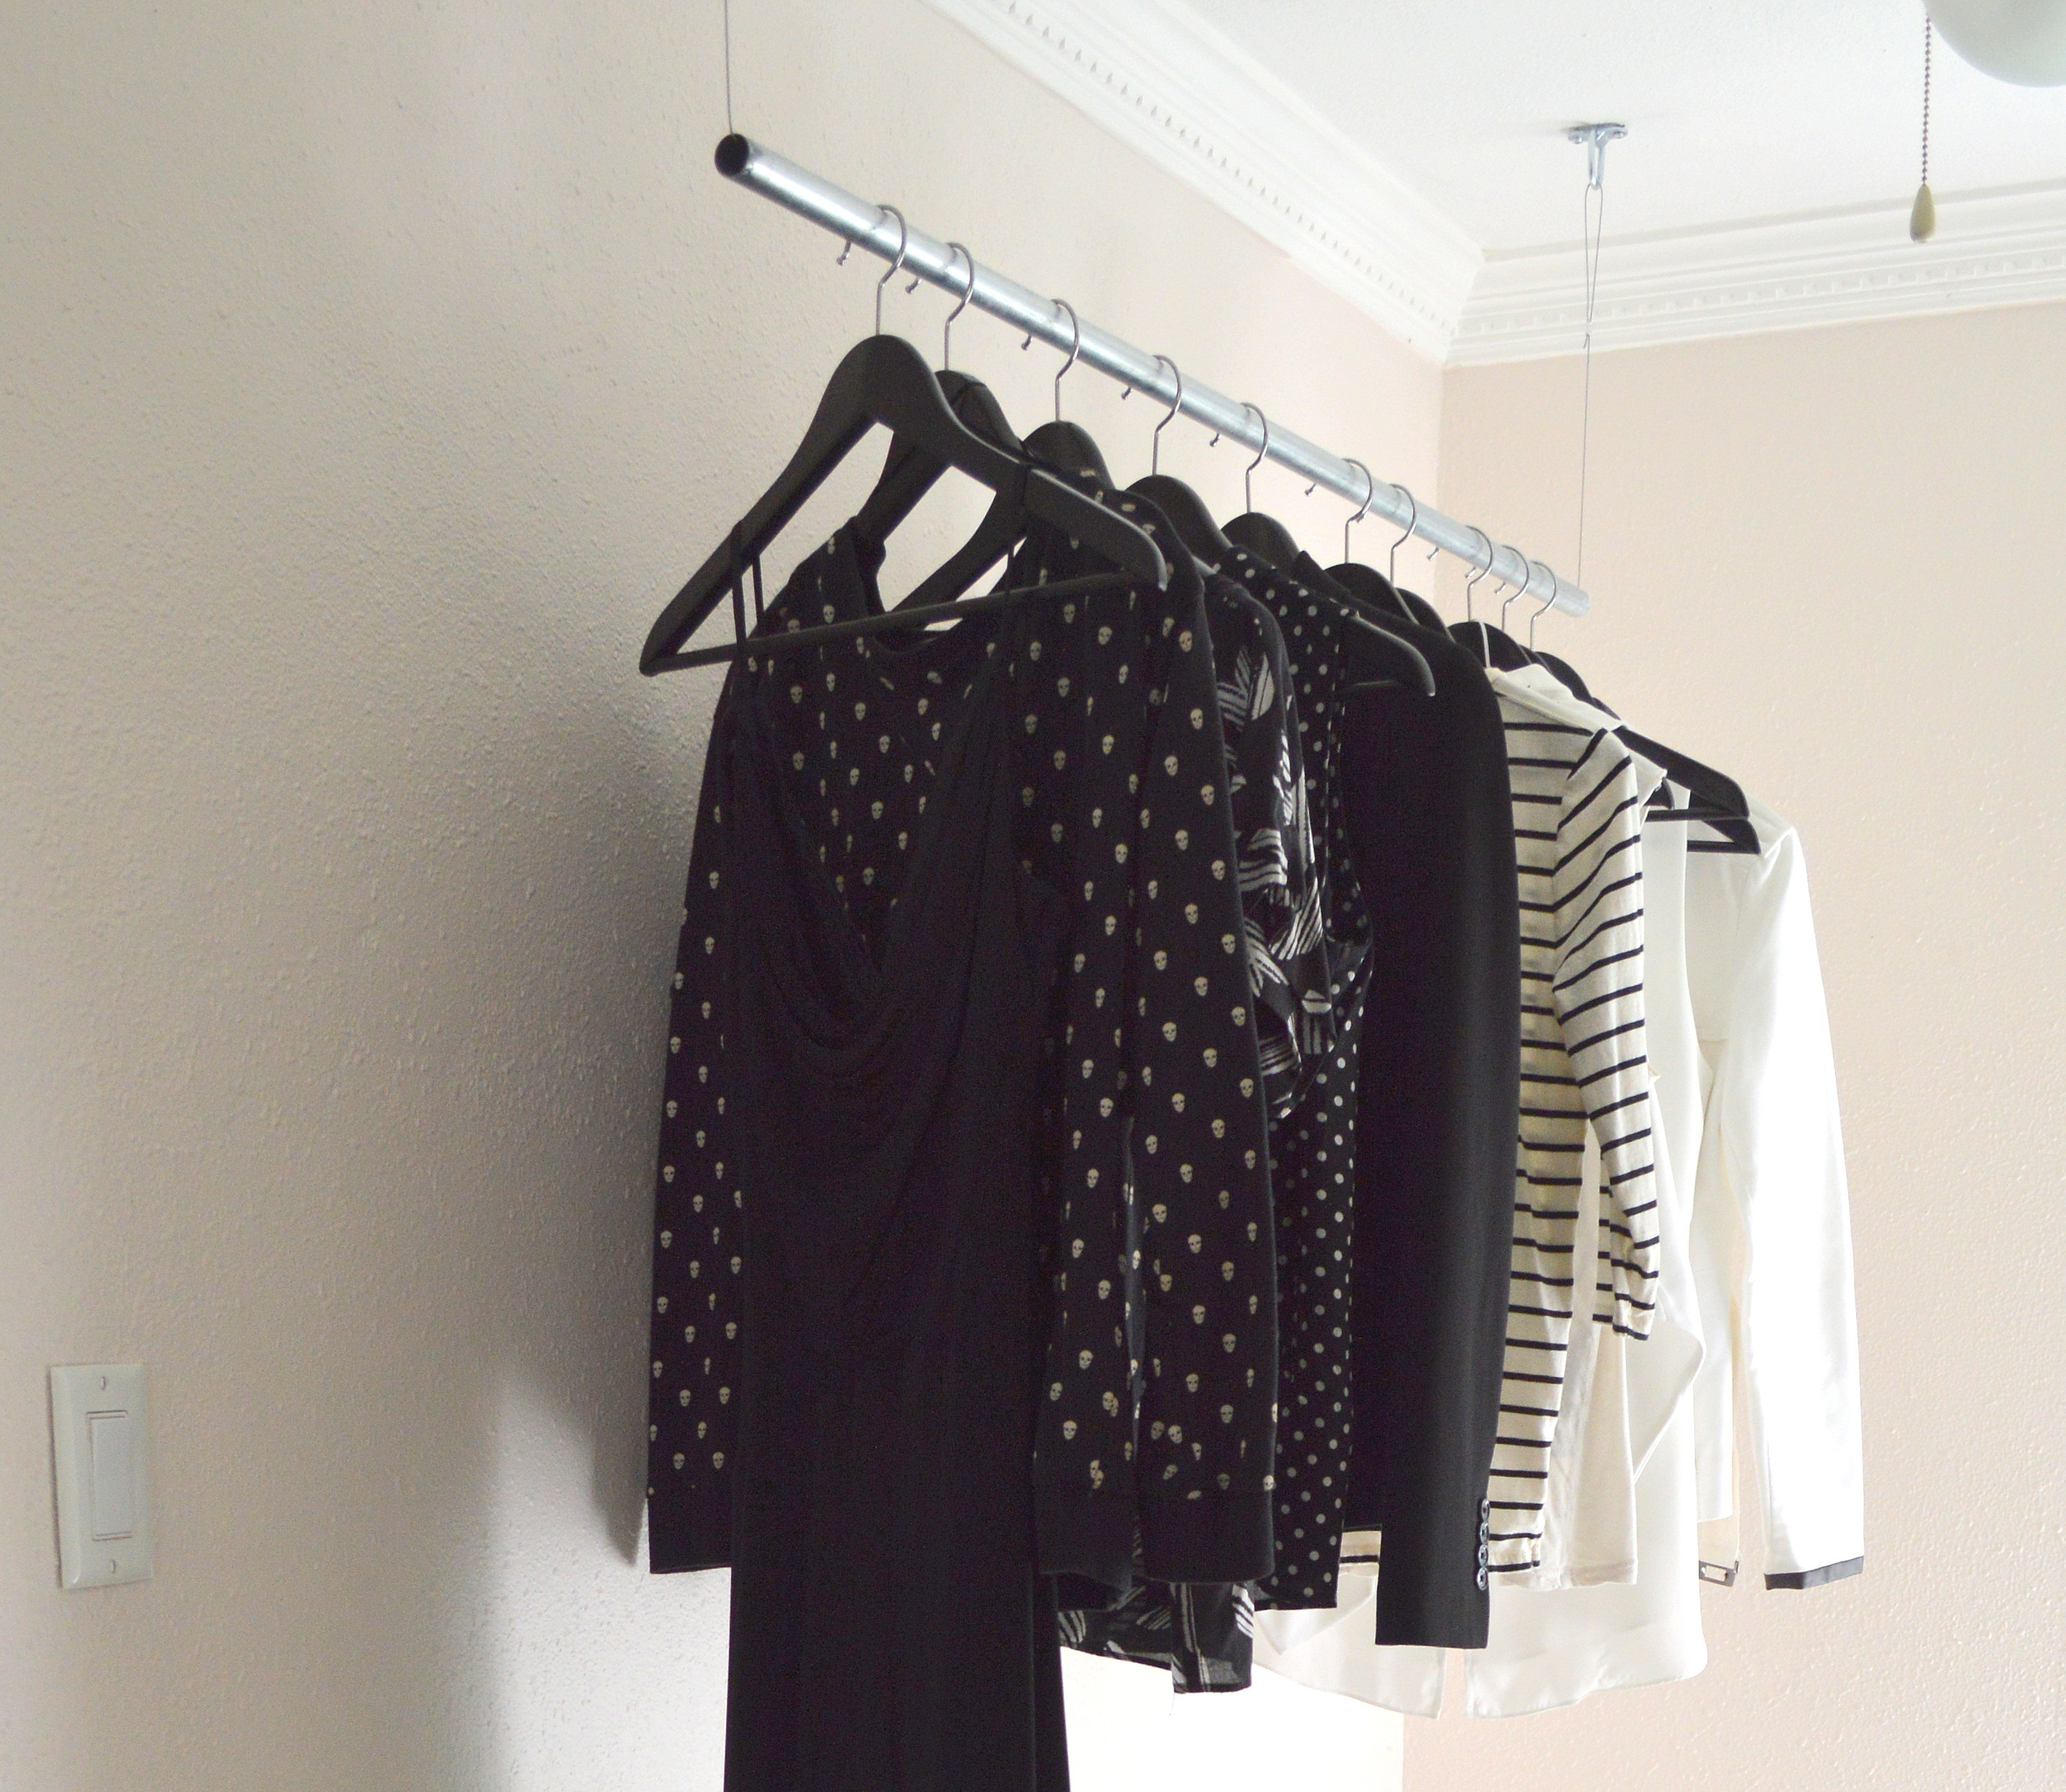 Best ideas about DIY Hanging Clothing Rack . Save or Pin DIY HANGING CLOTHES RACK Now.